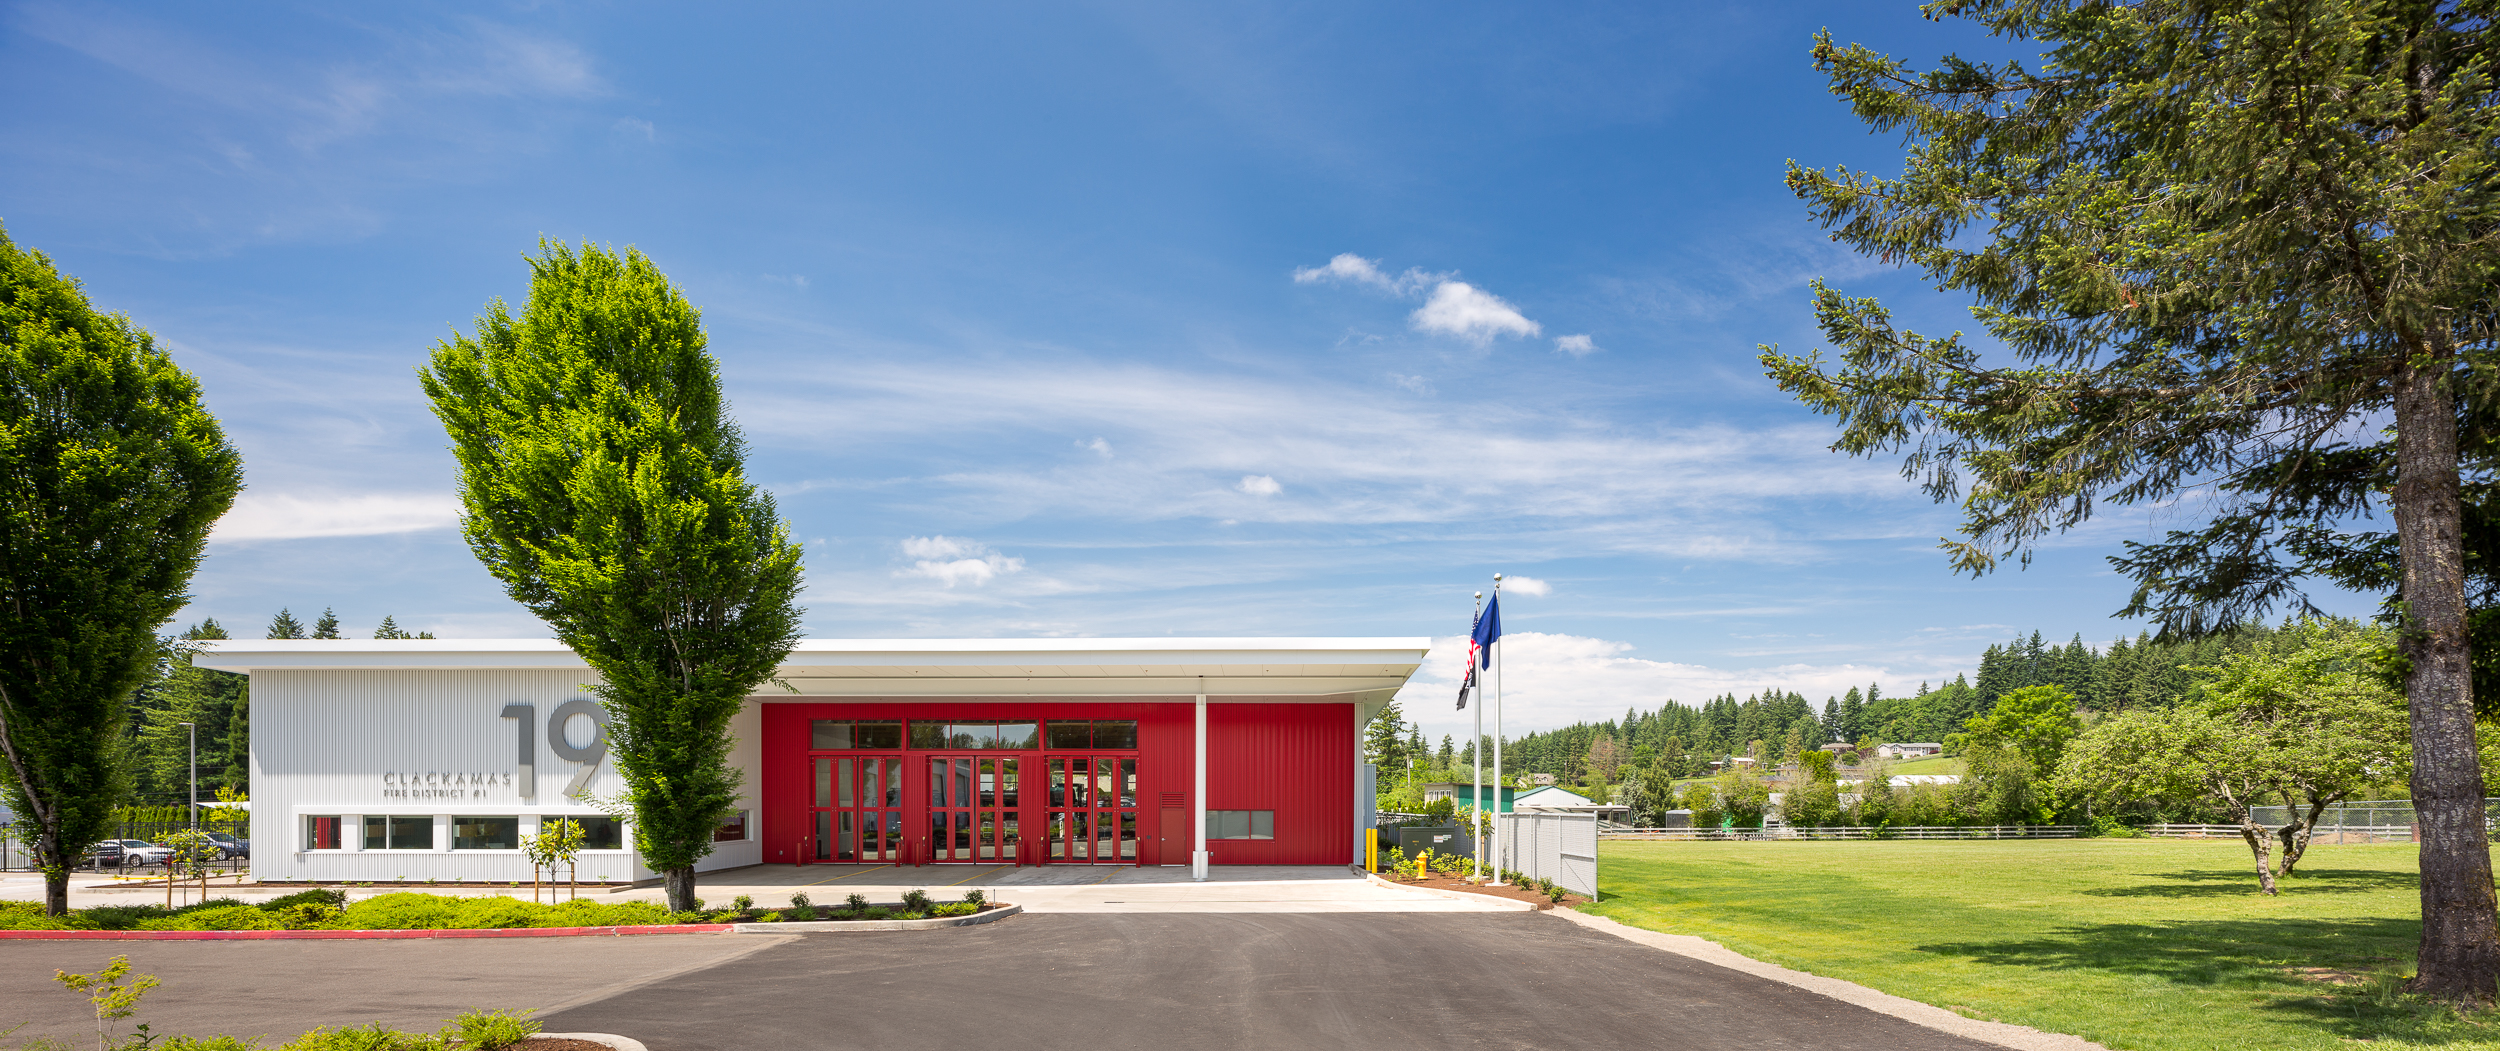 Clackamas Fire District, Station 19 / Hennebery Eddy Architects